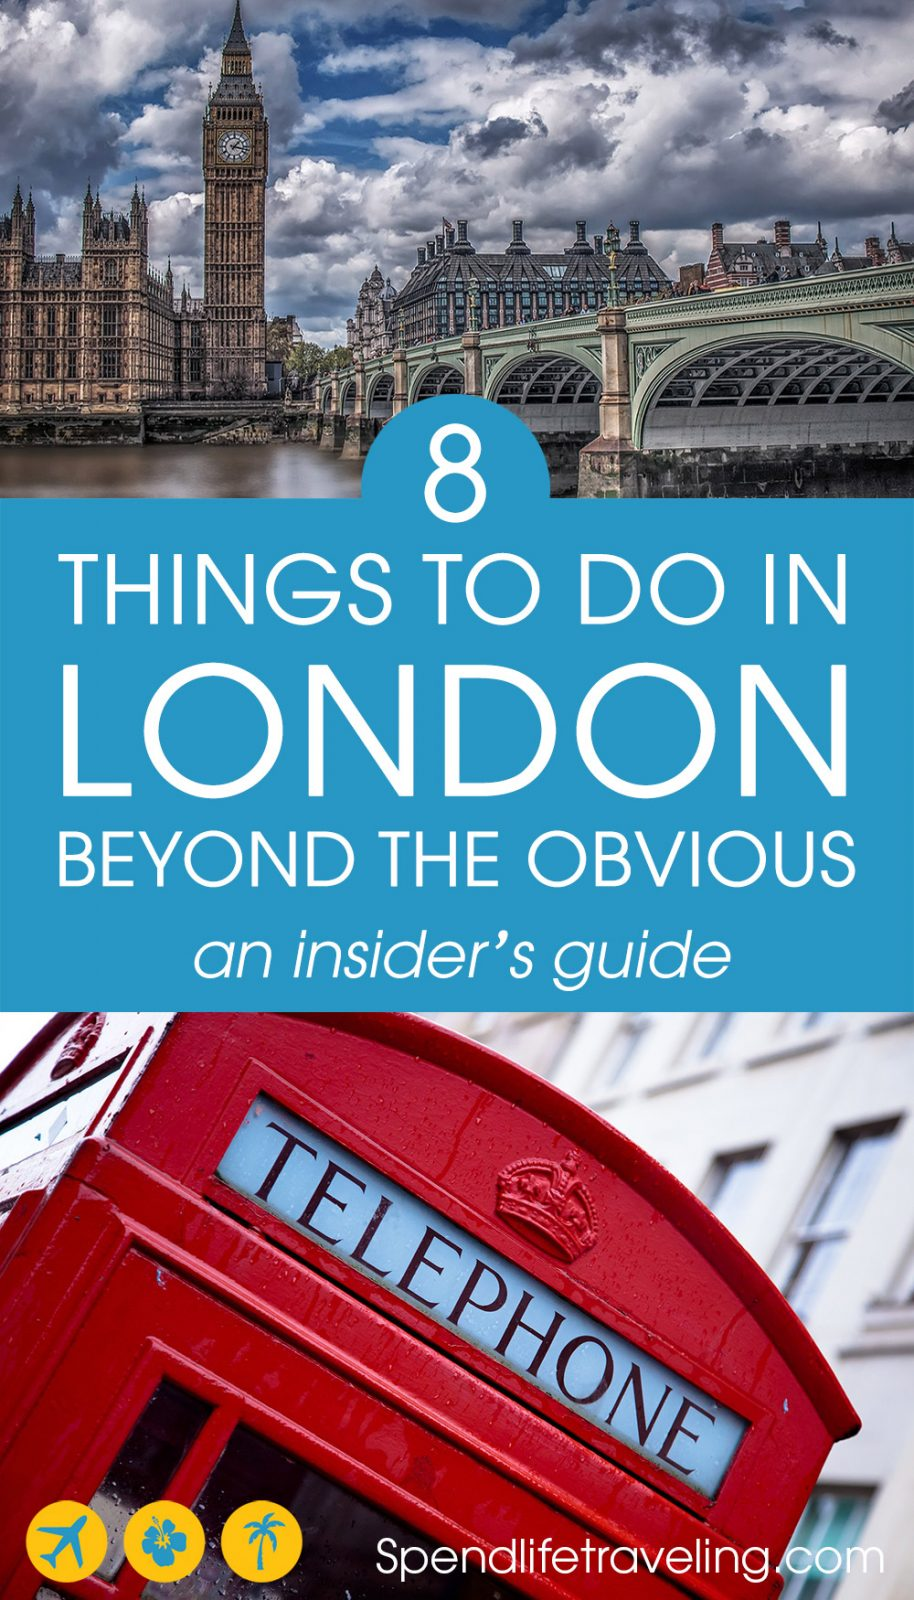 An insider's guide to what to see & do in London beyond the obvious tourist attractions listed in every guidebook. #London #traveltips #citybreak #cityguide #insidertips